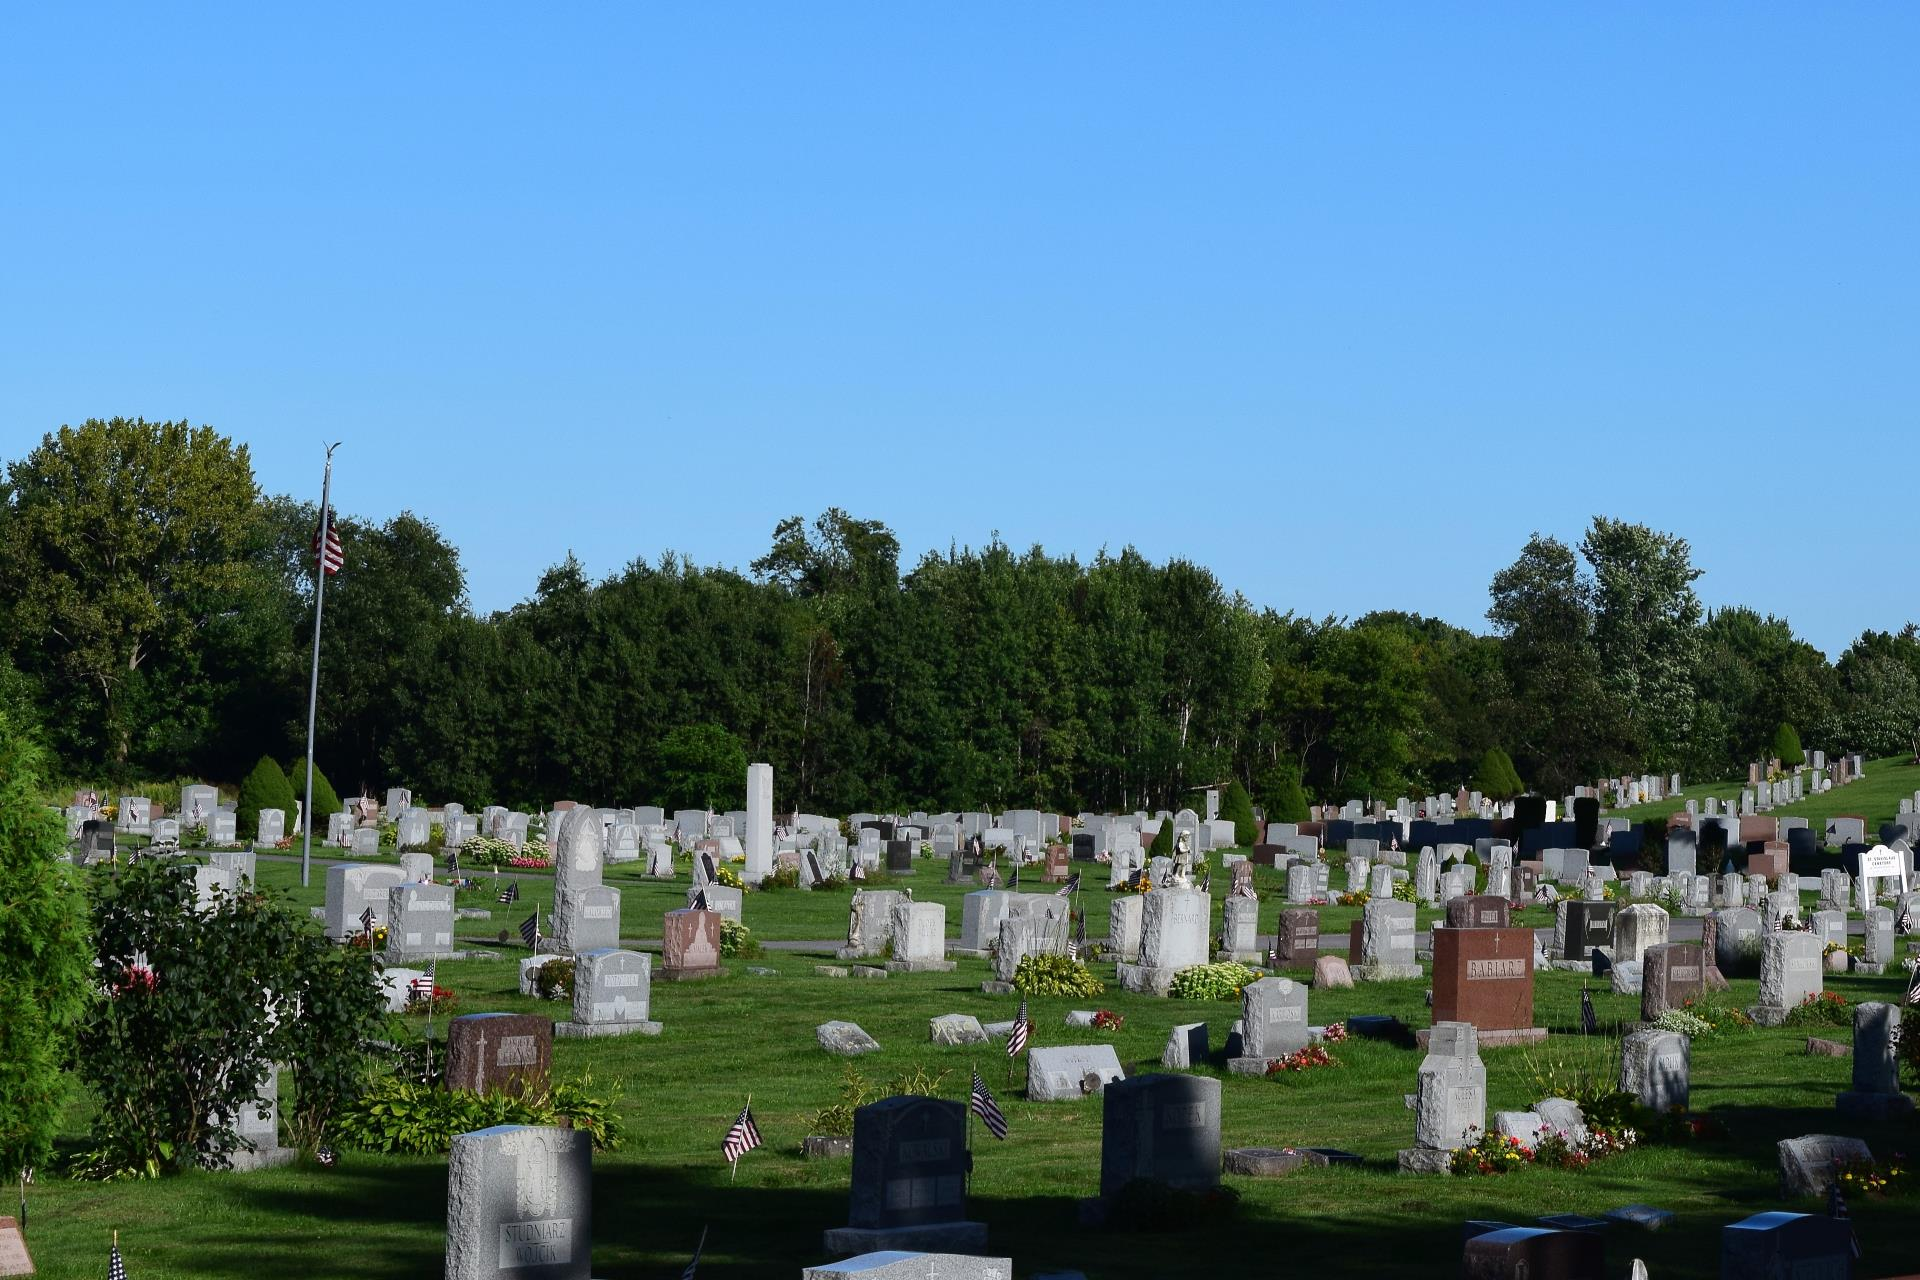 Burial Grounds at St. Stanislaus Cemetery